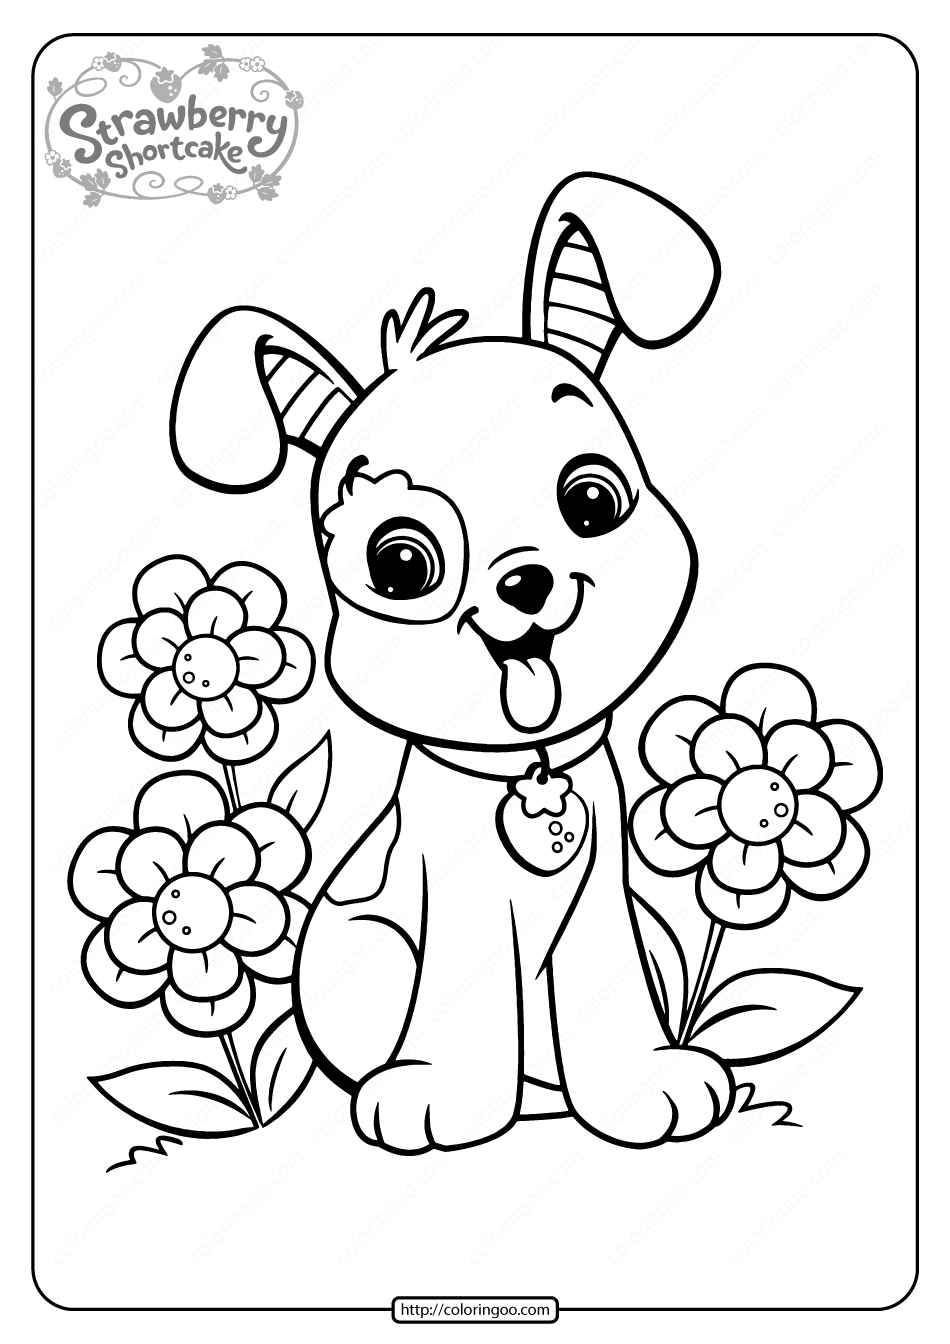 Free Printable Strawberry Pupcake Coloring Page Puppy Coloring Pages Dog Coloring Page Cute Coloring Pages